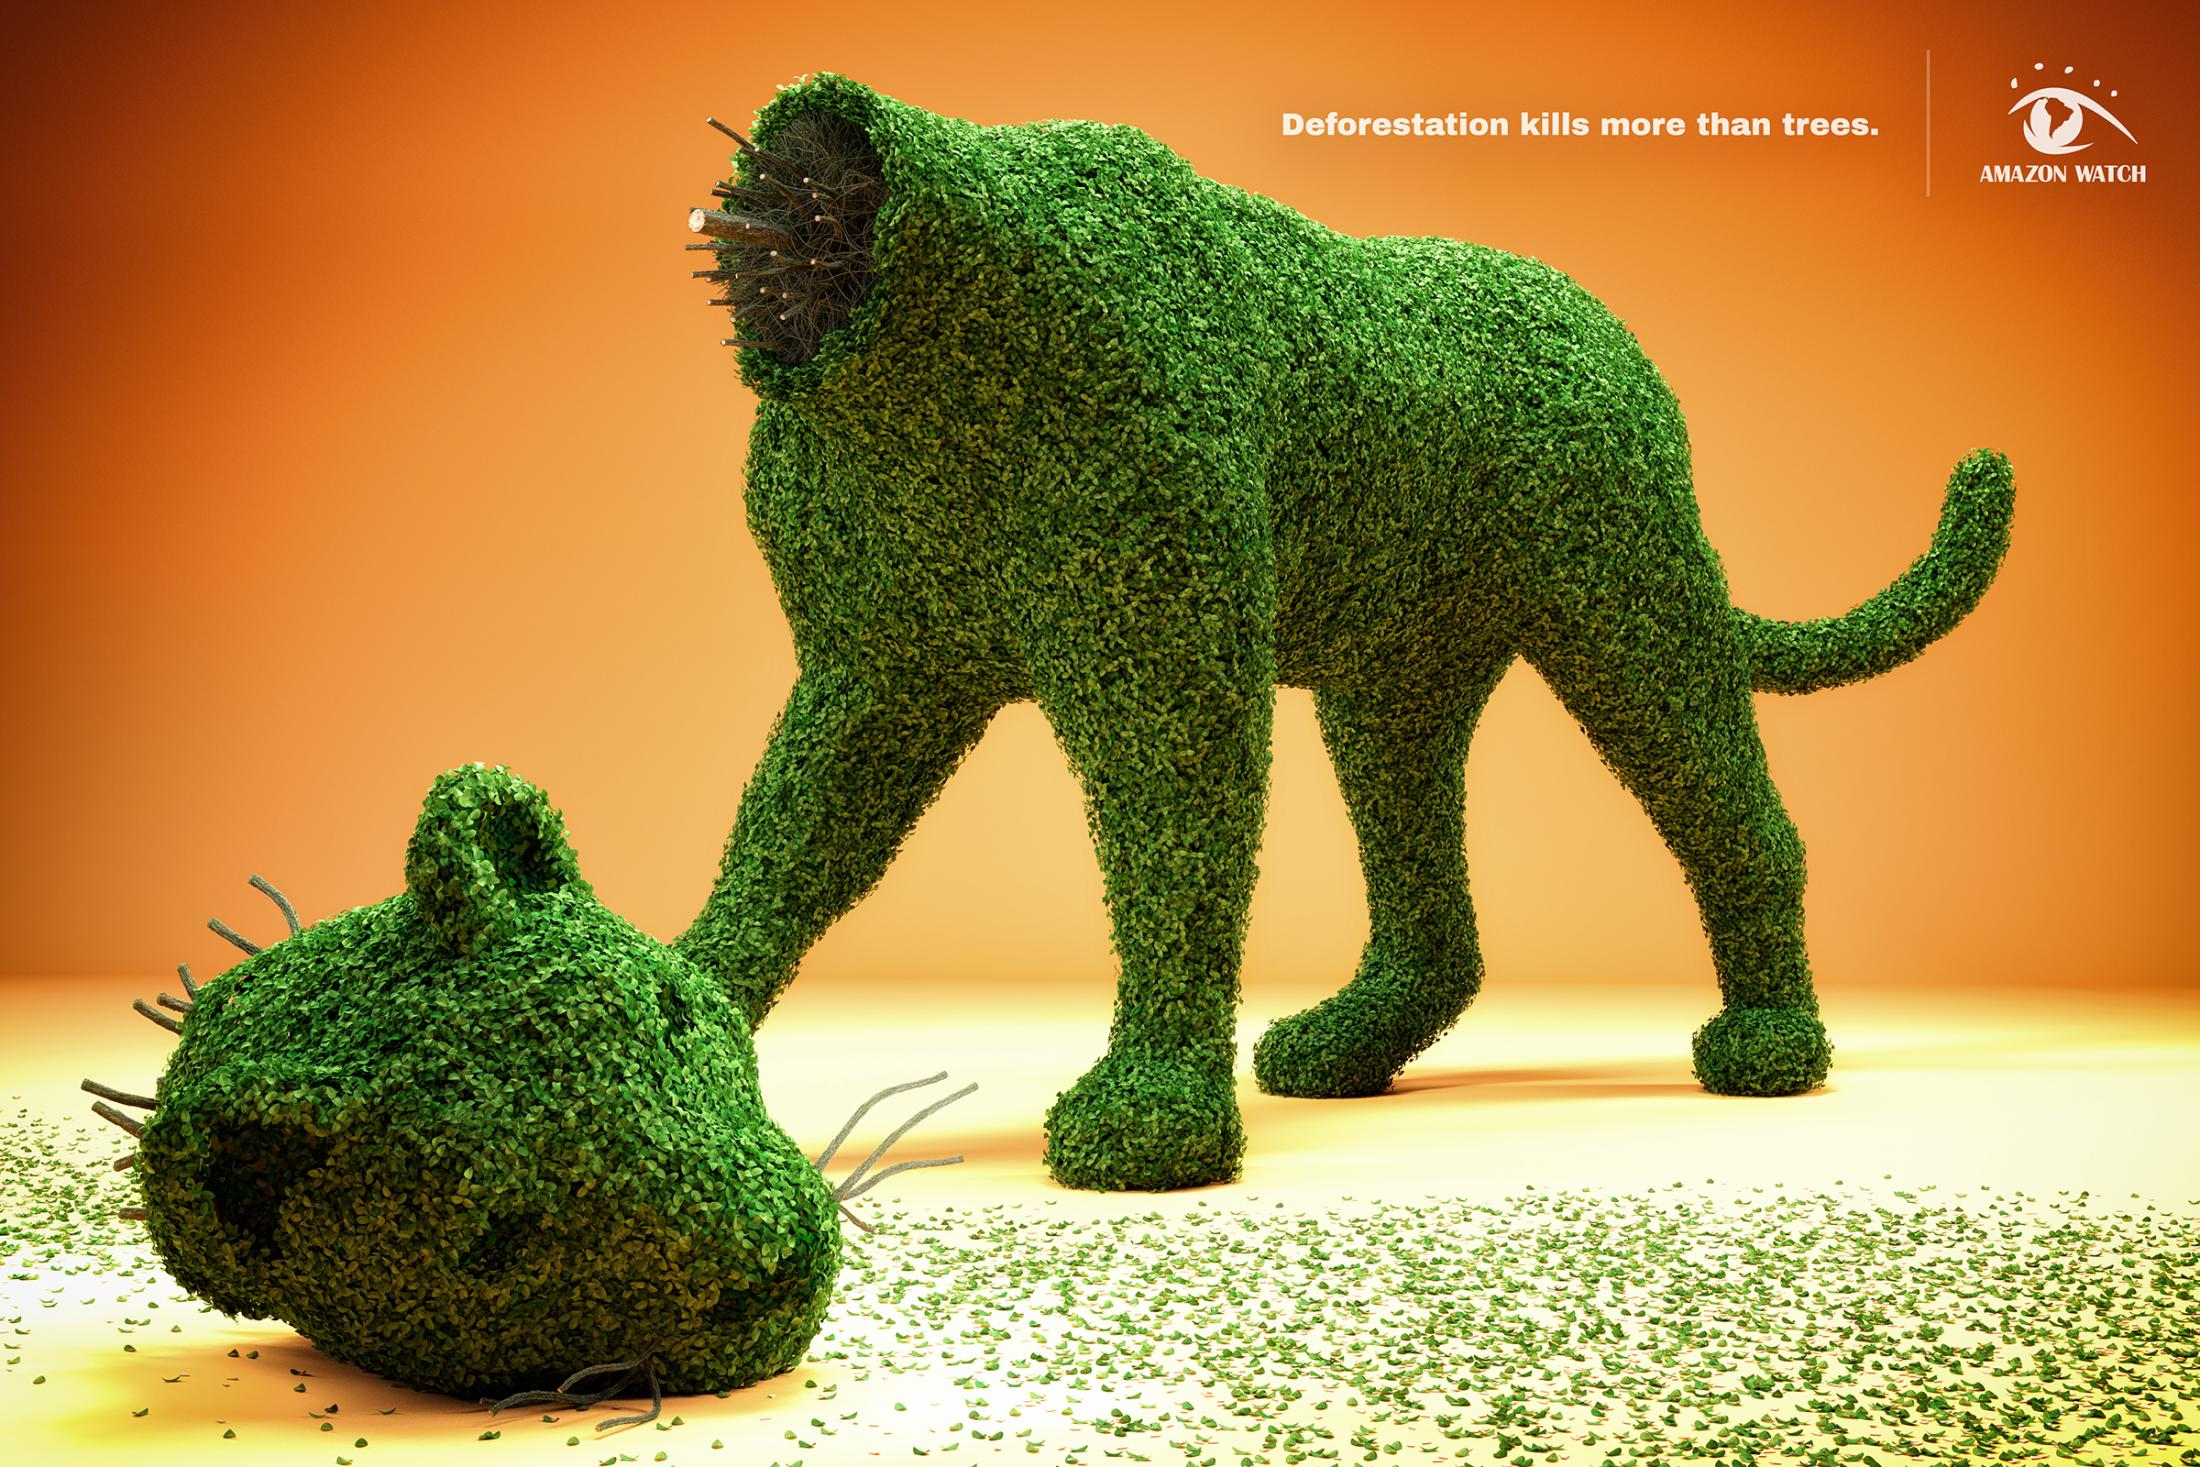 Amazon Watch Print Ad - Topiary Terror - Jaguar